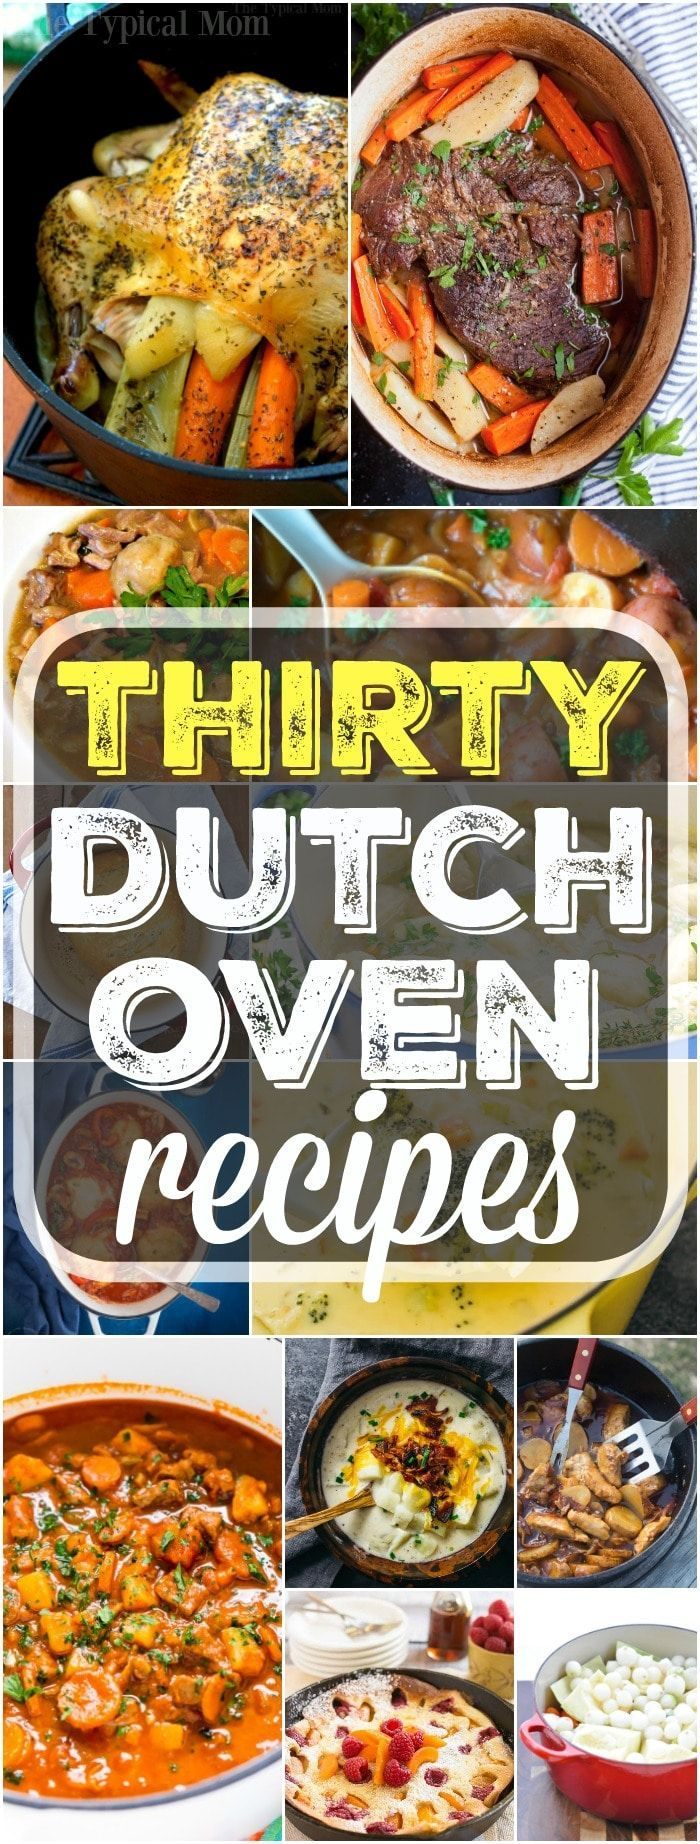 Thirty dutch oven recipes